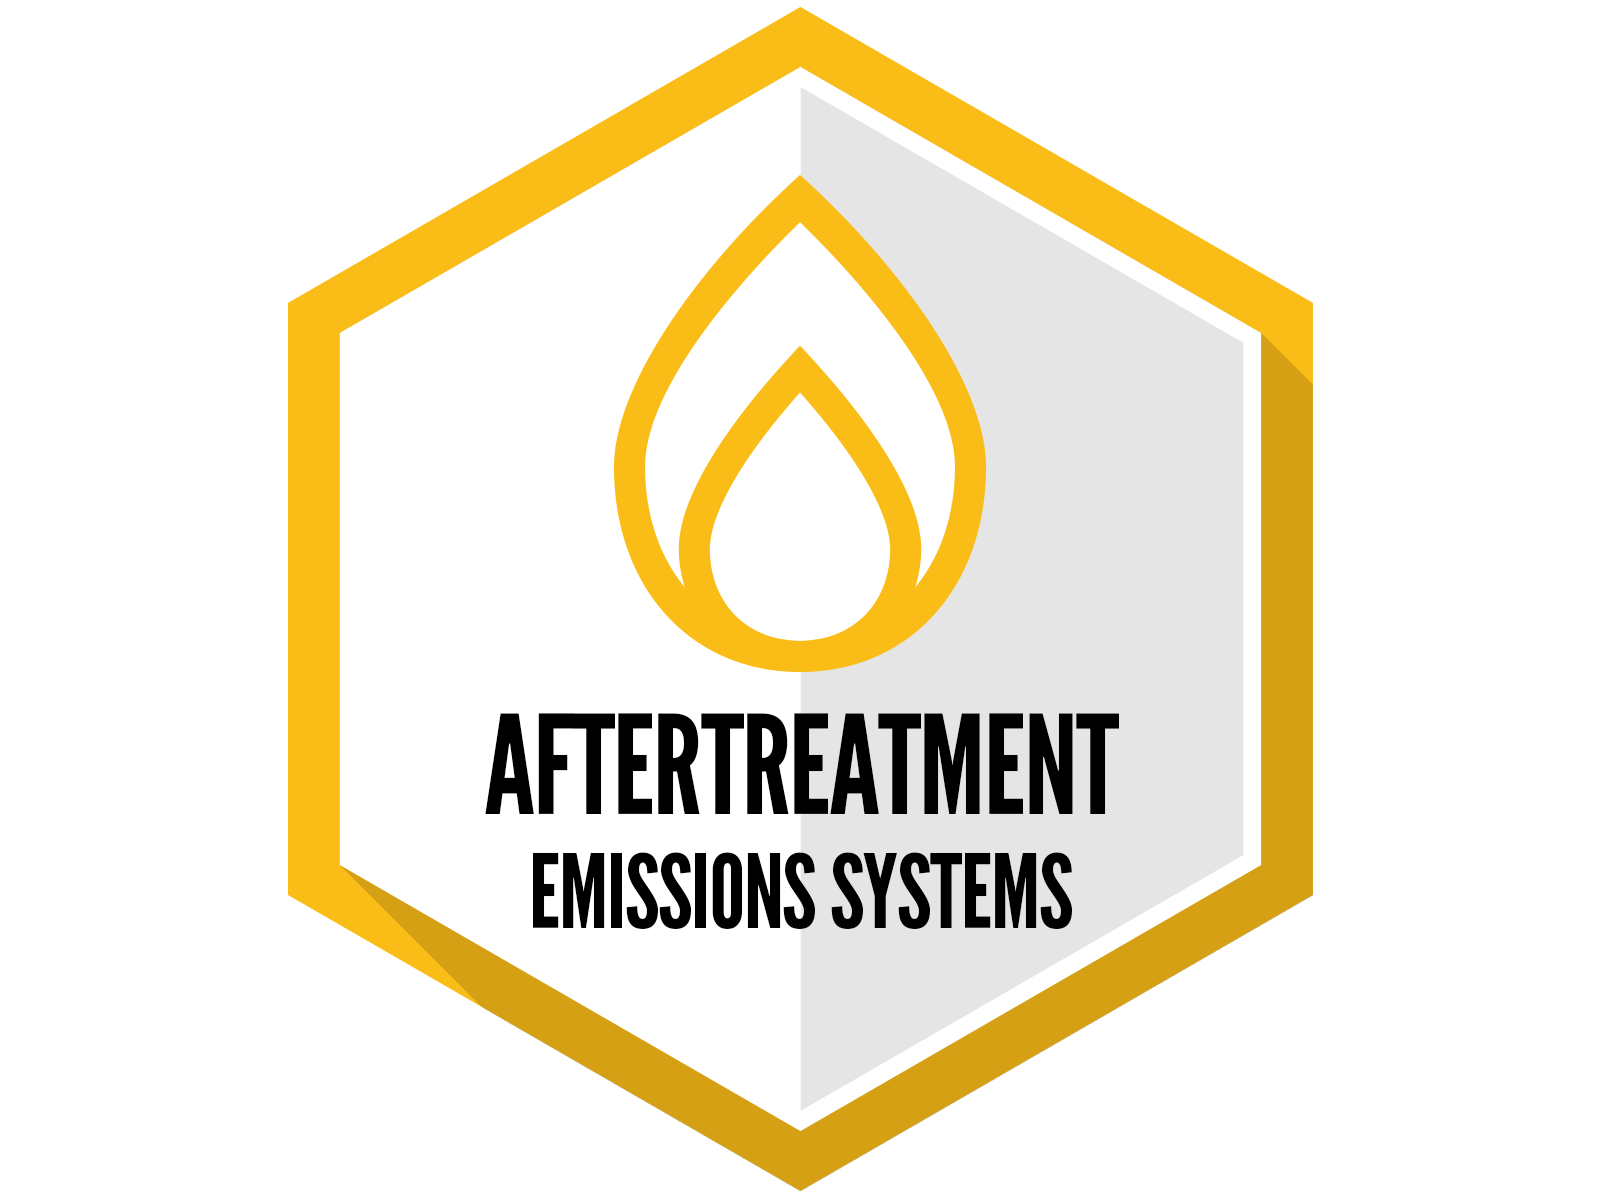 Aftertreatment and Emissions Systems - Grand Rapids, MI